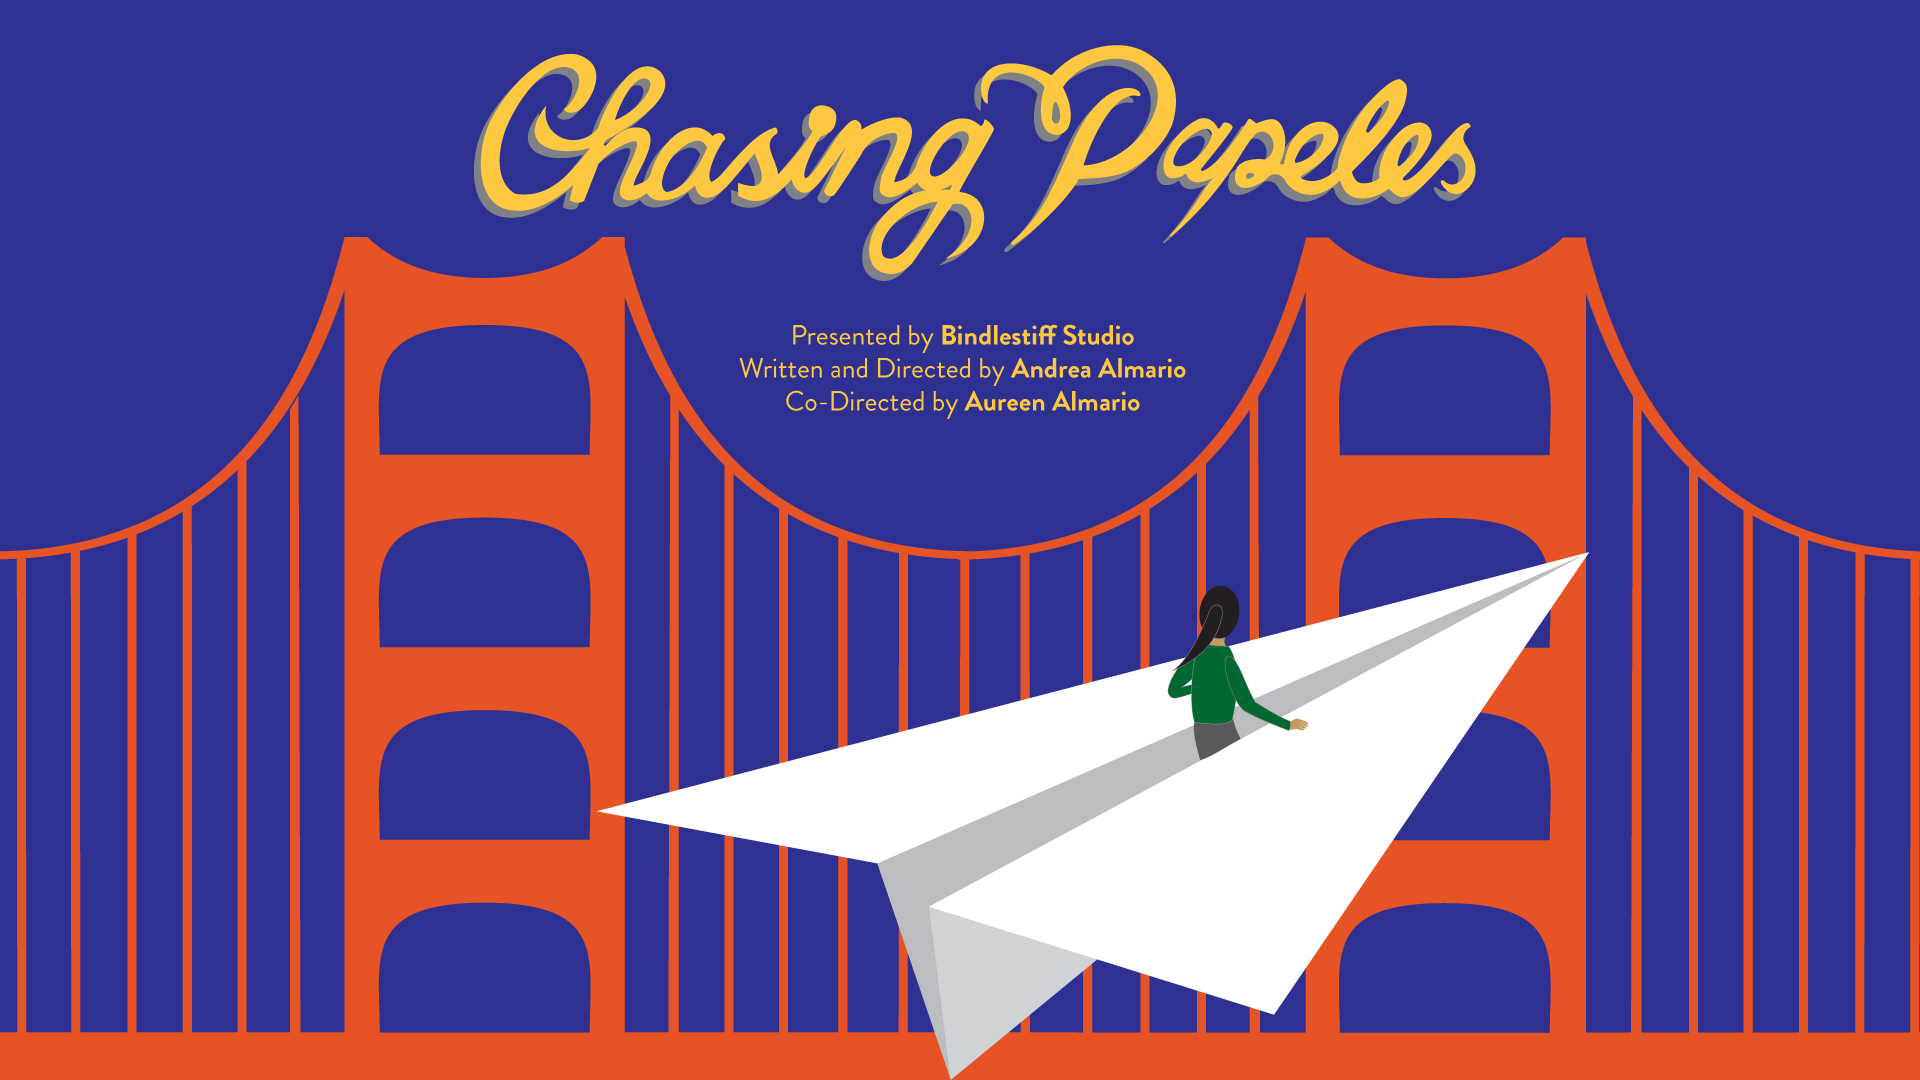 Chasing Papeles 2018. Graphic Design by Joyce Yin.